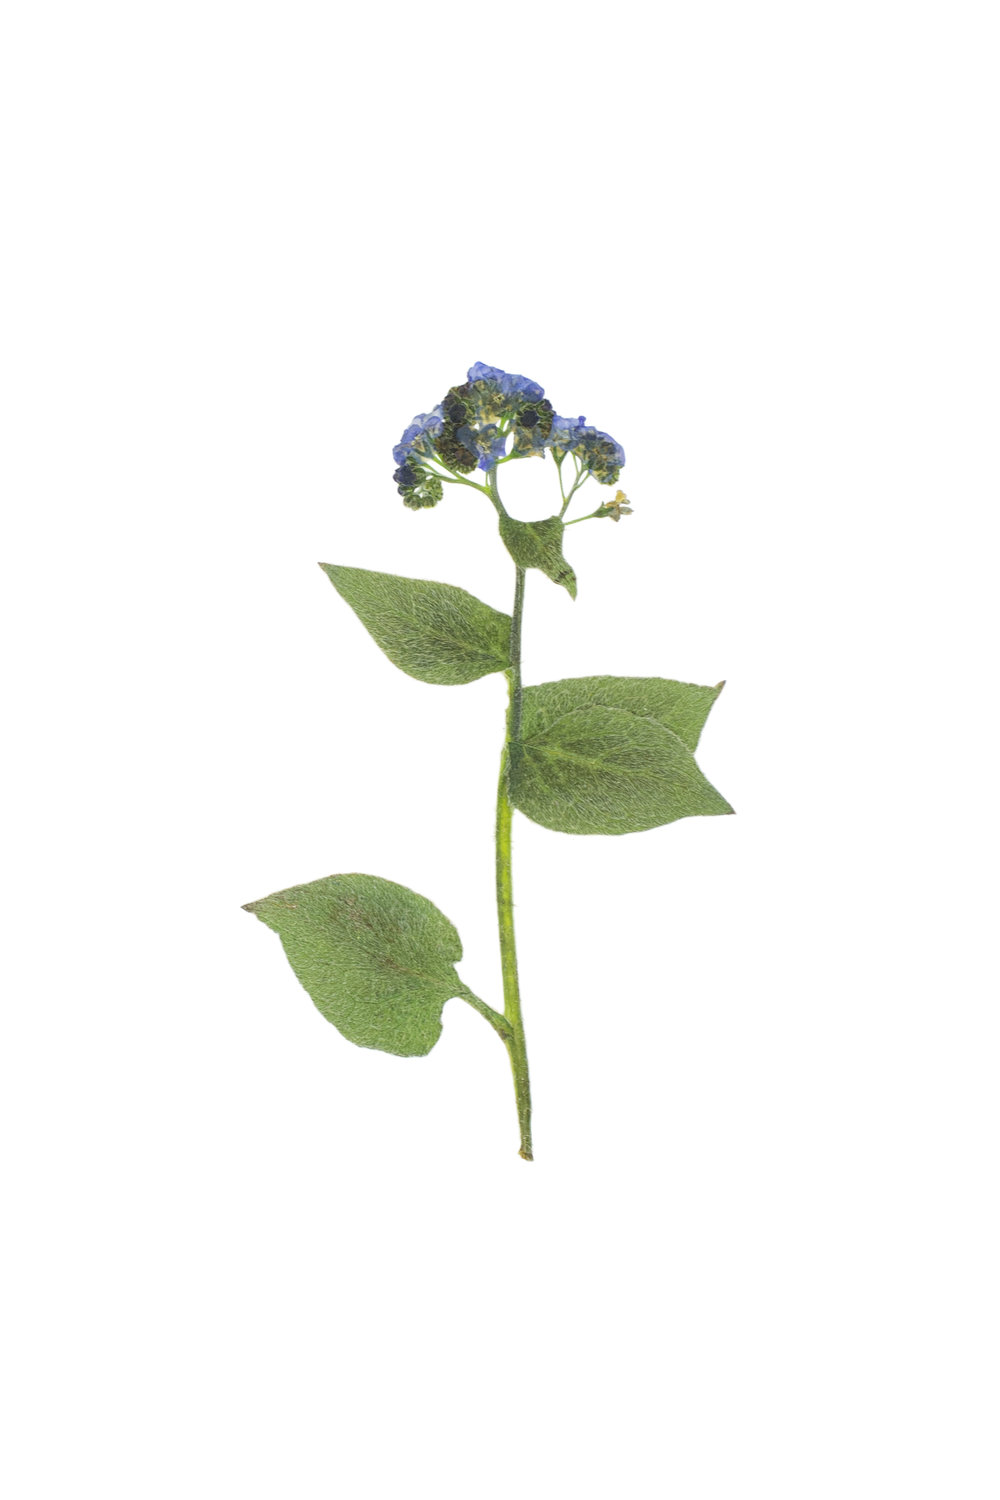 Great Forget-Me-Not / Brunnera macrophylla